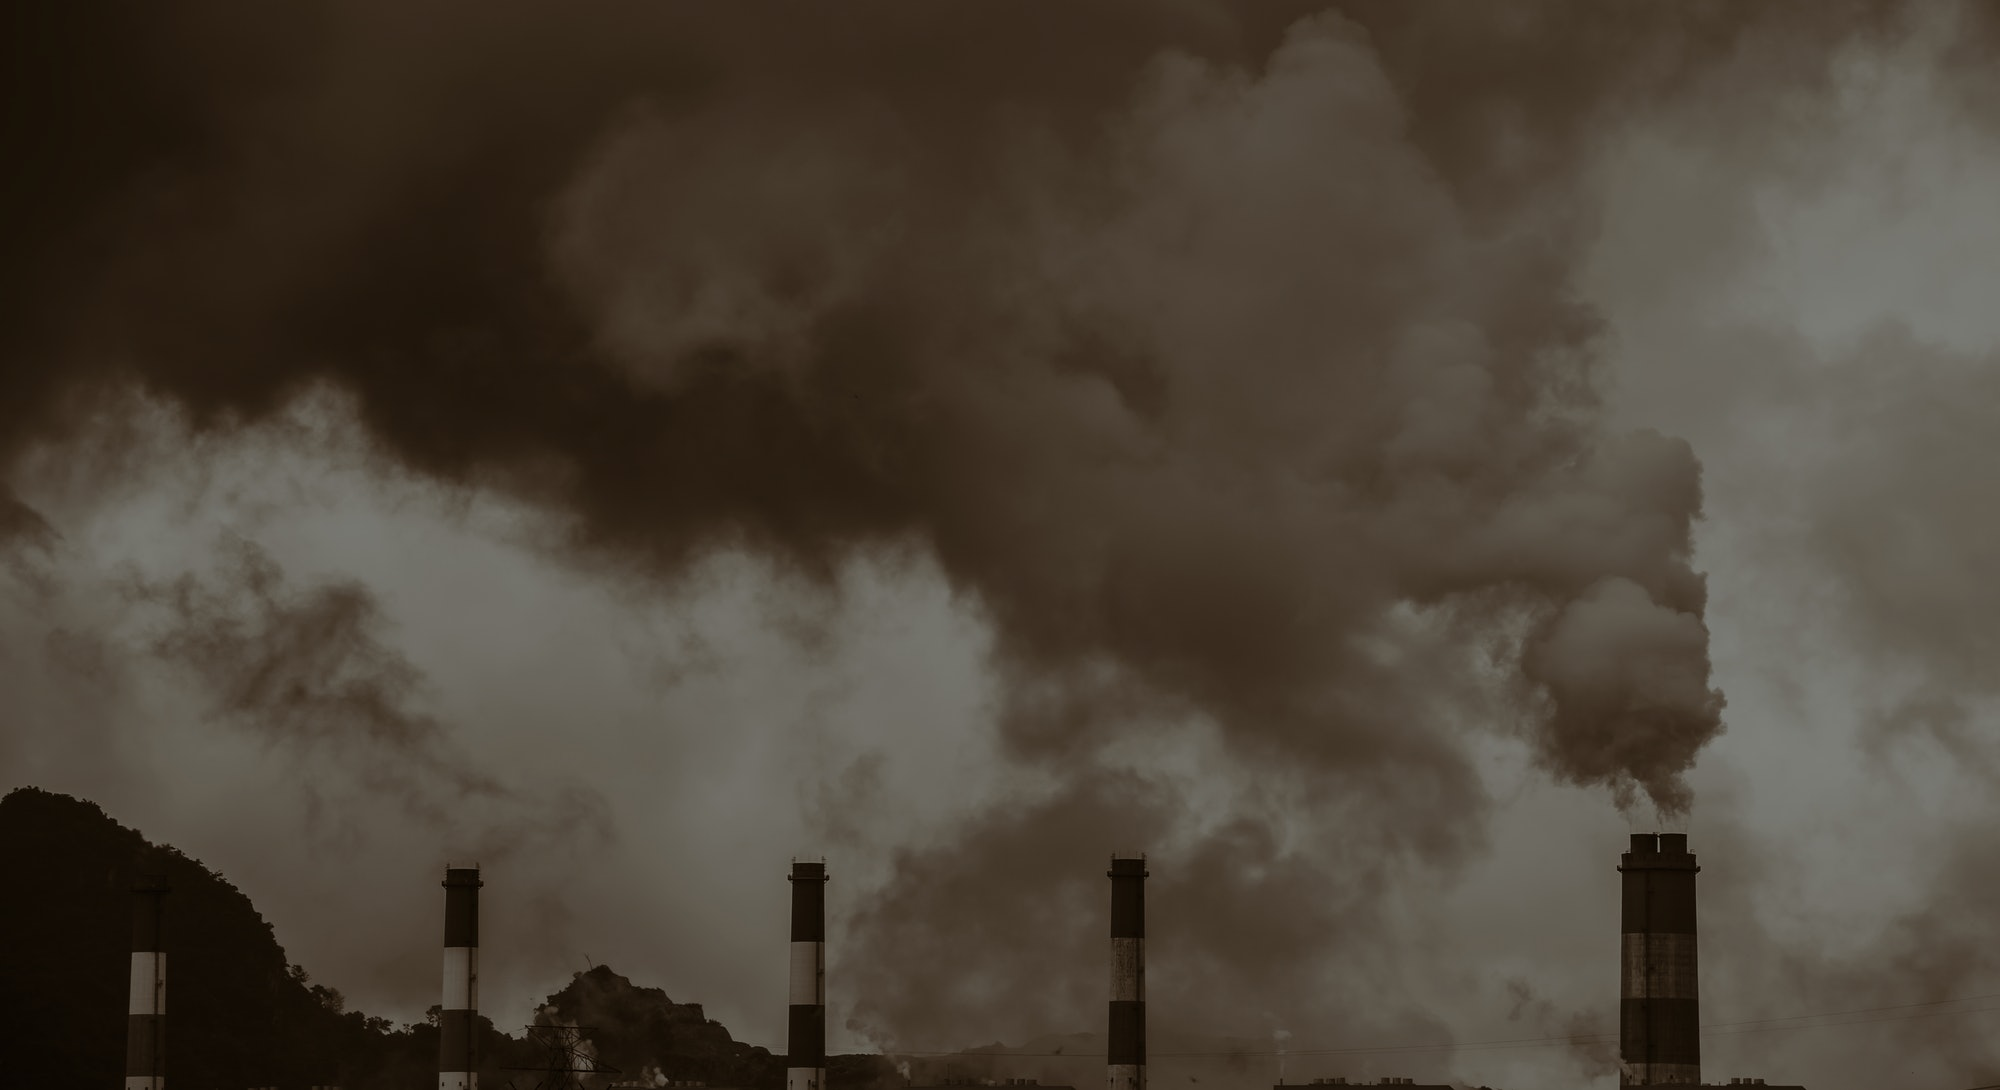 Air pollution crisis of danger PM 2.5  carbon dioxide dust smoke from coal power plant